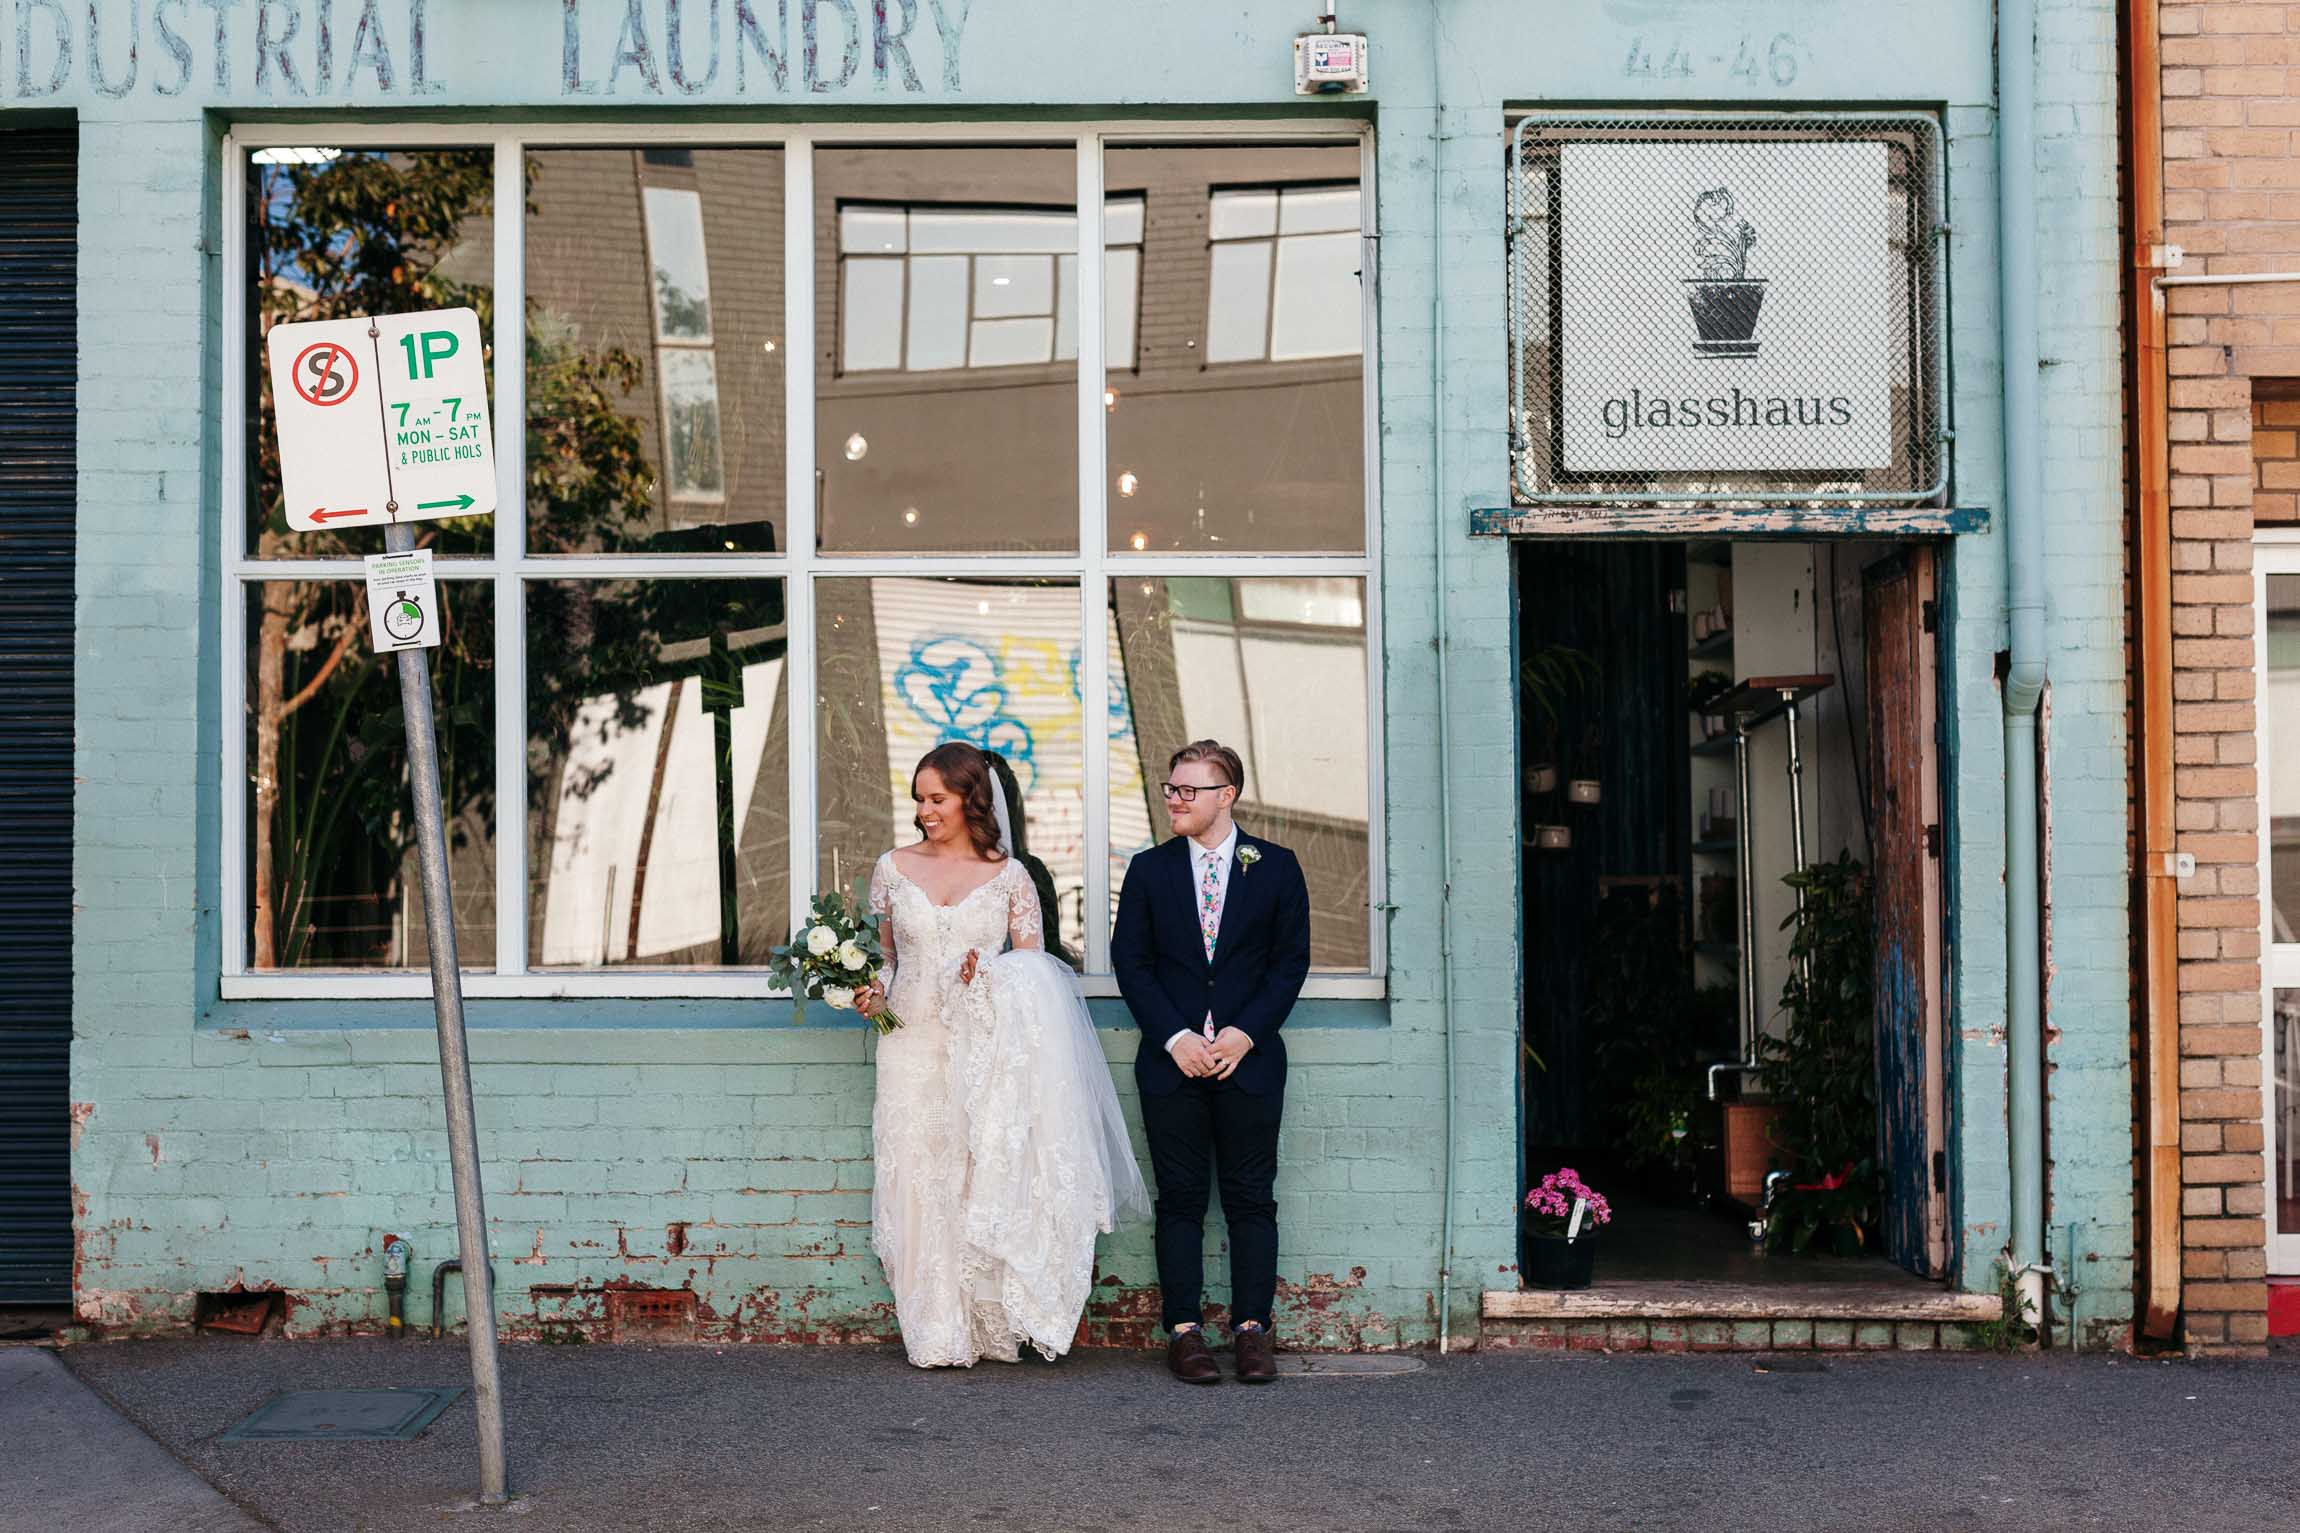 lachlan-scallion-melbourne-victoria-austrlia-mornington-peninsula-candid-relaxed-natural-chilled-wedding-photographyglasshaus-richmond-302.jpg